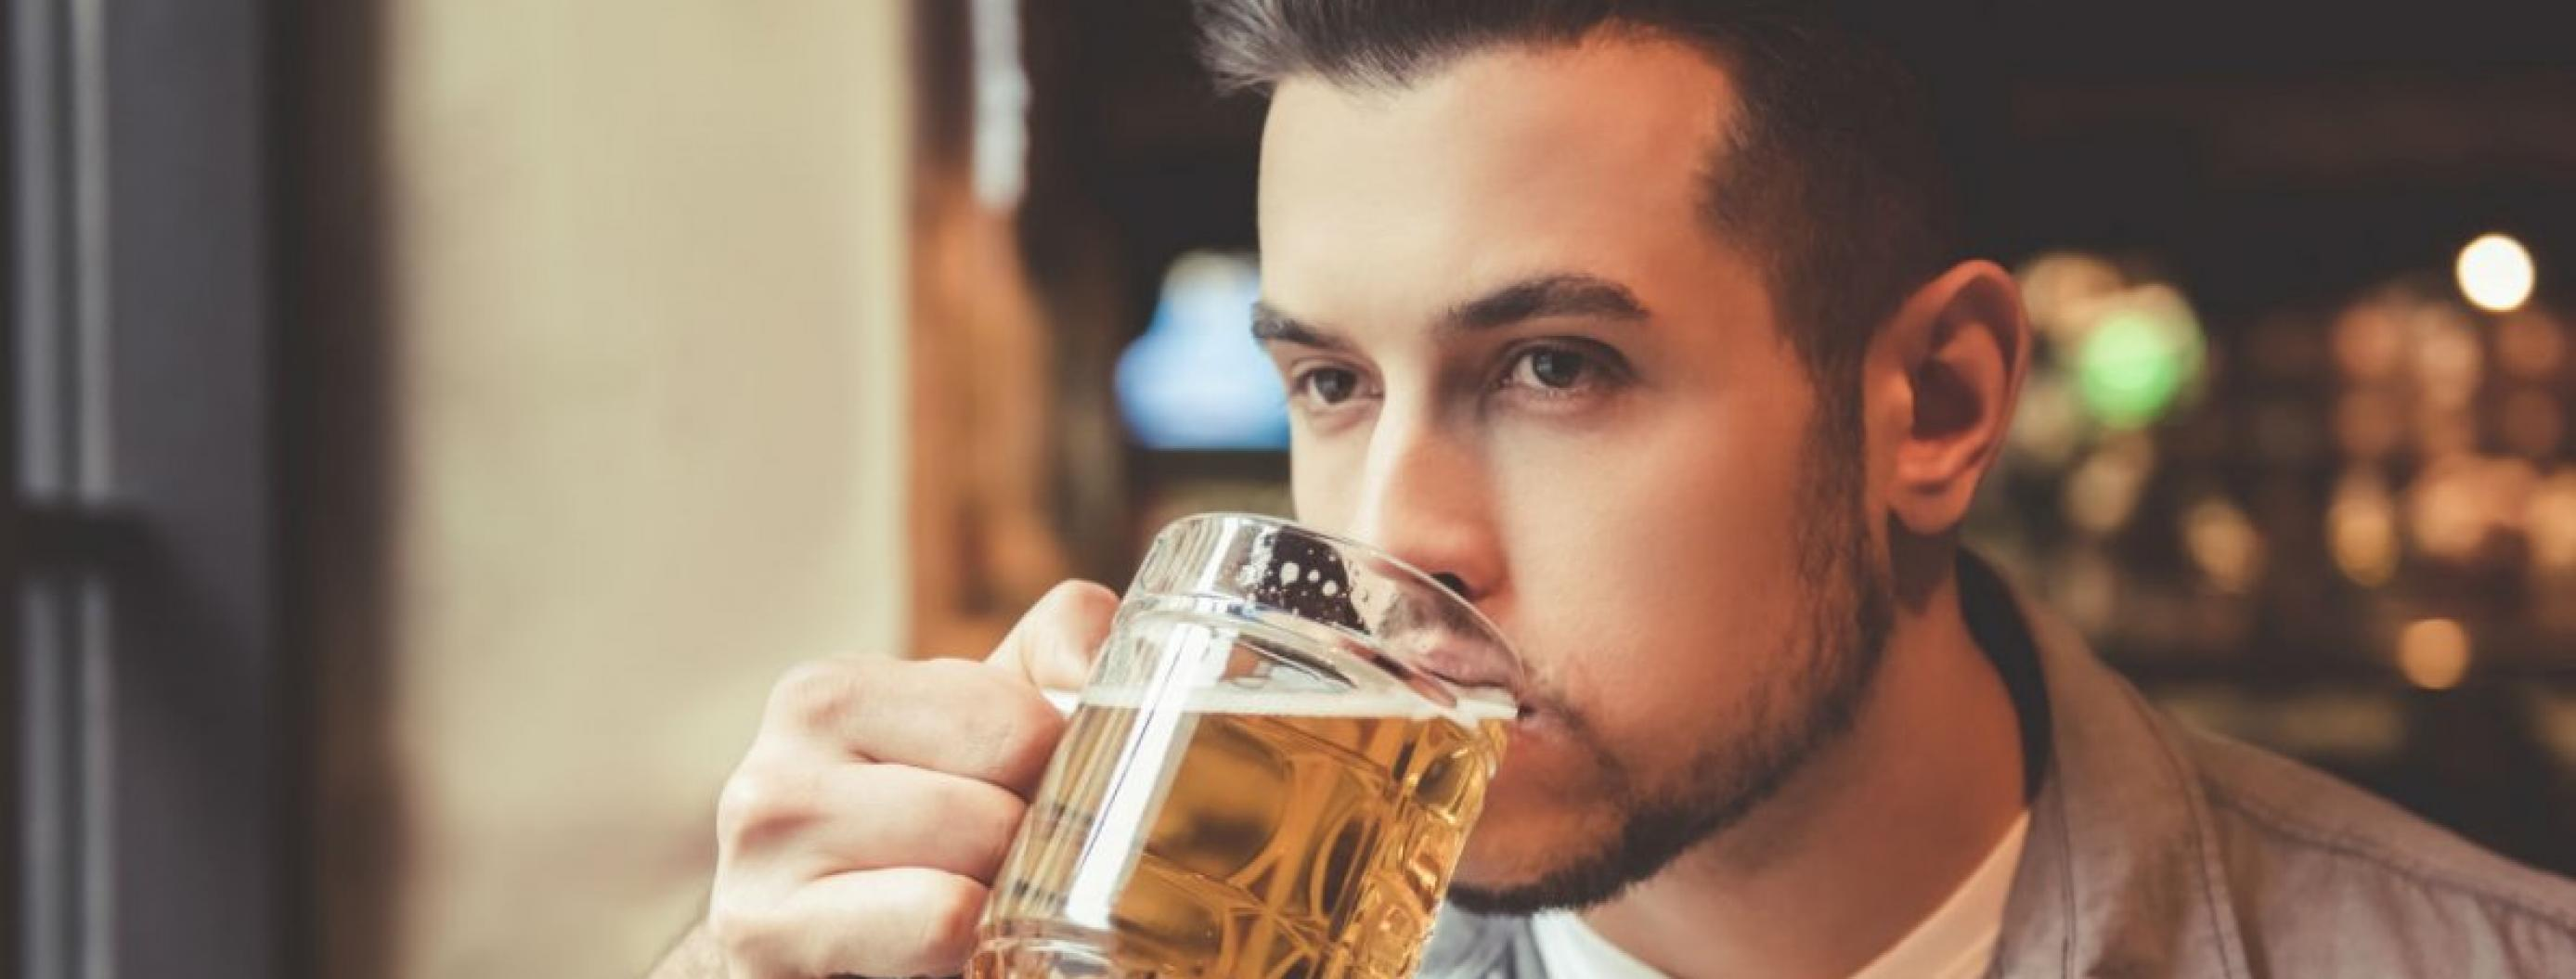 Drinking in Moderation Could Increase Male Fertility According to a New Study